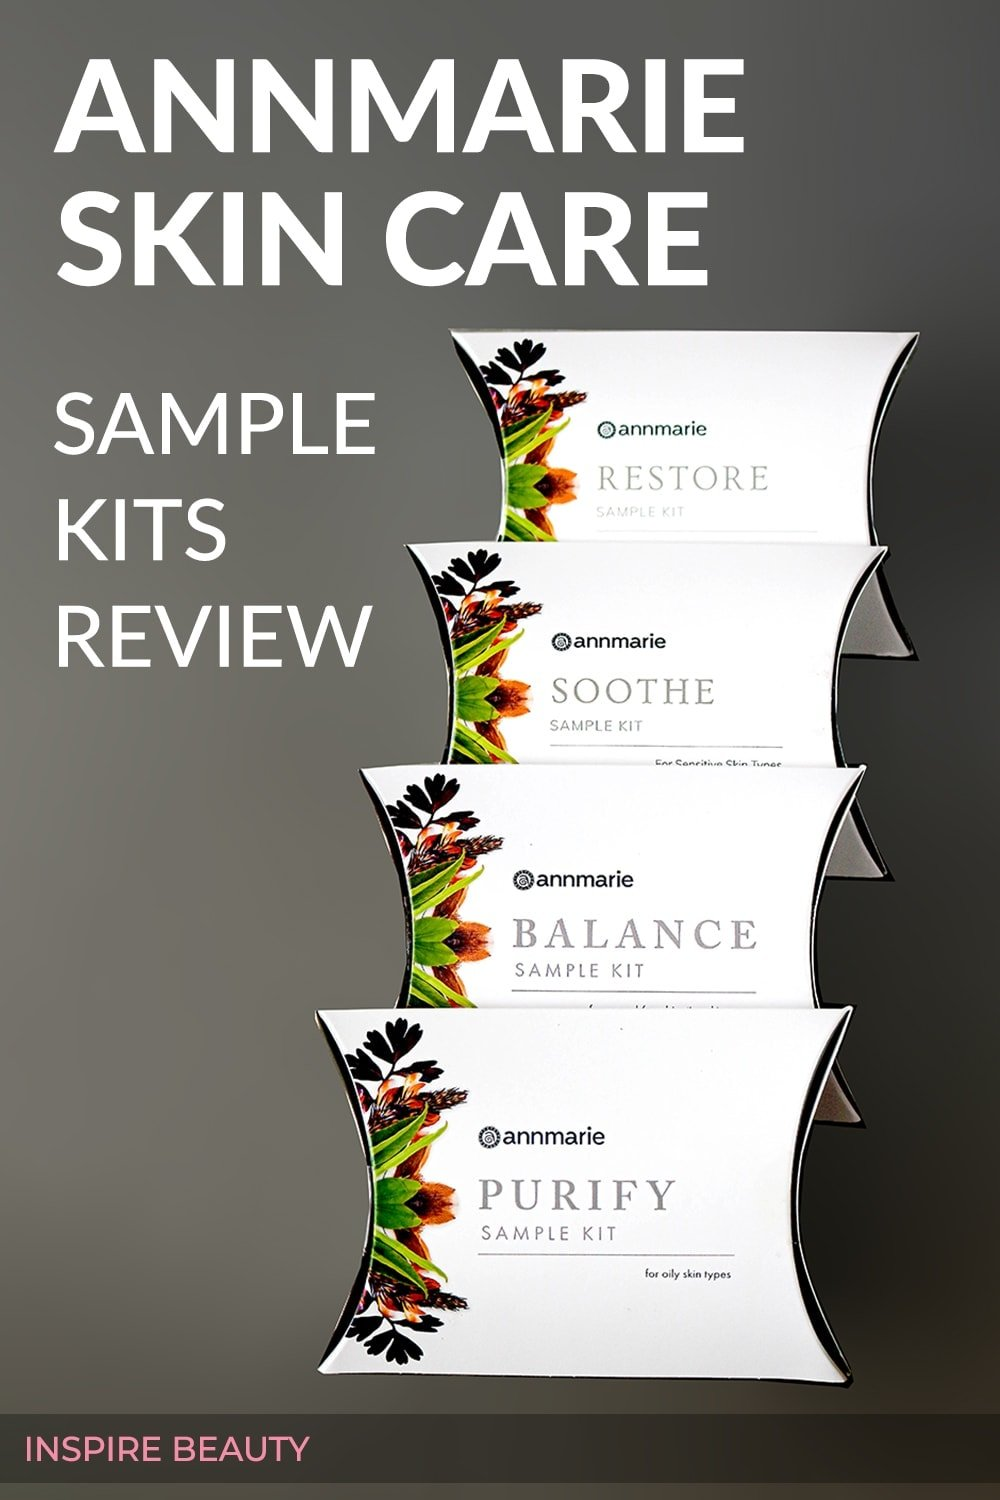 Annmarie Skin Care Sample Kits reviews of Purify, Balance, Restore and Soothe sample kits.